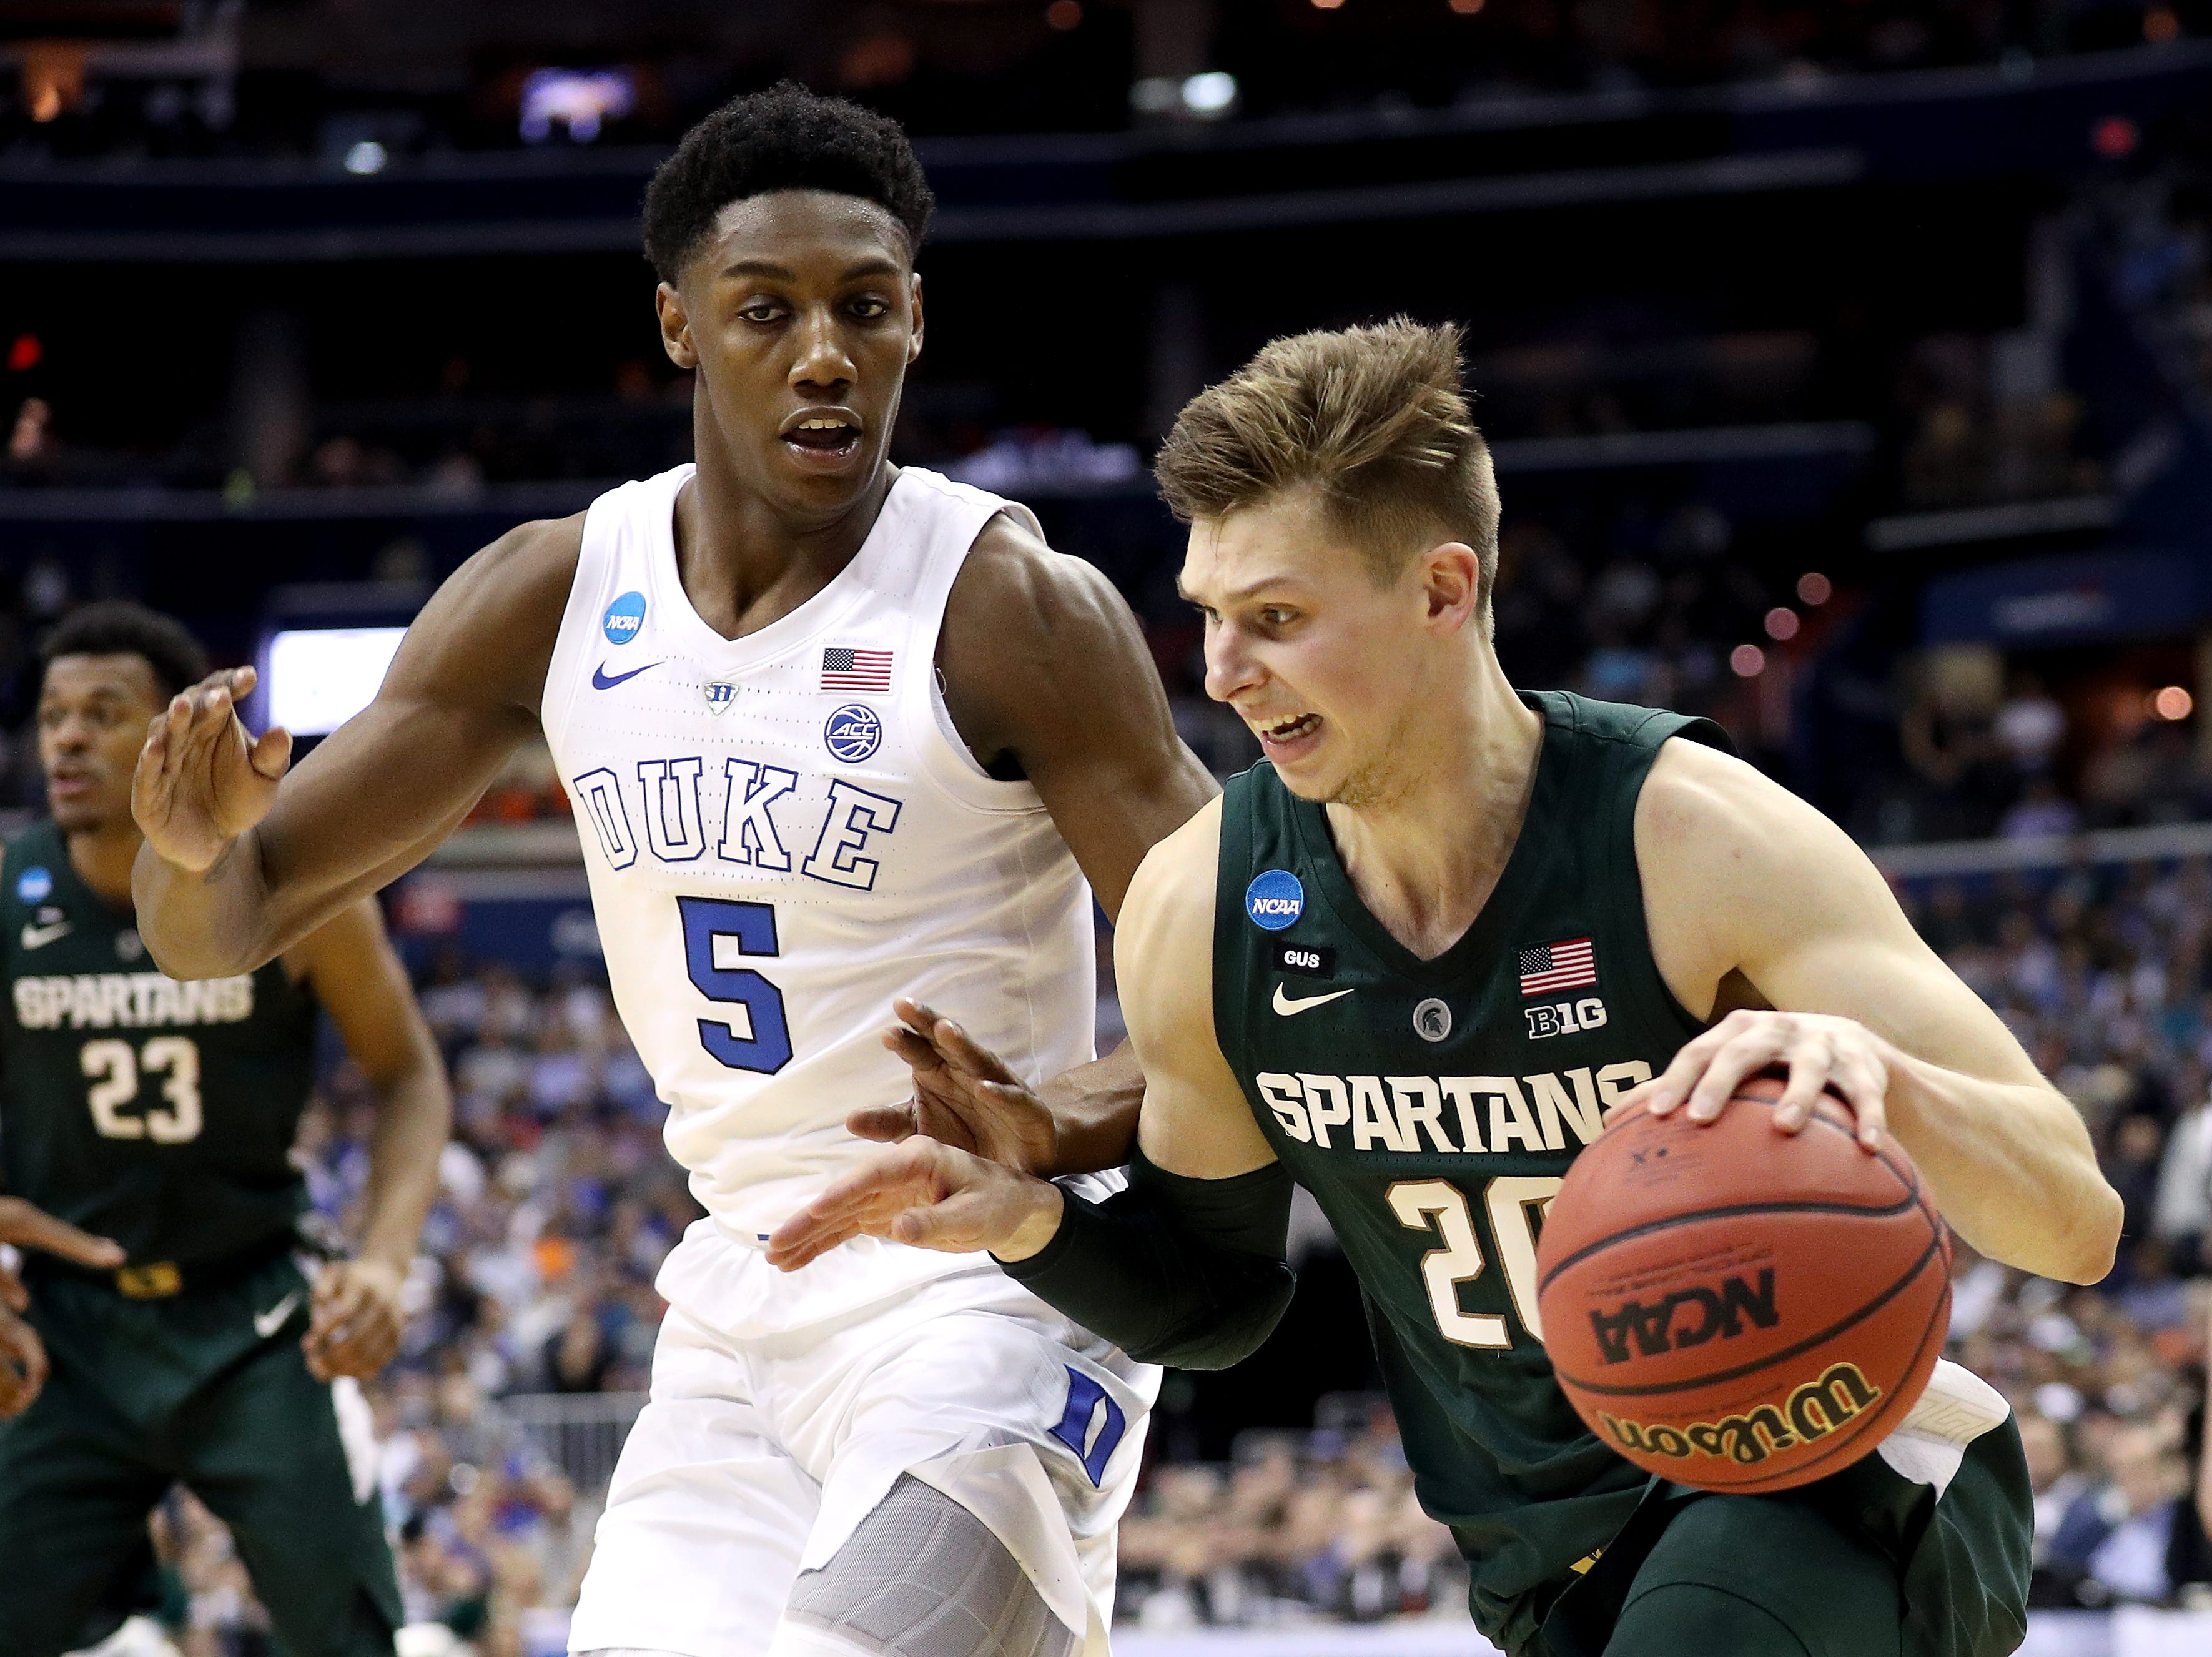 Matt McQuaid #20 of the Michigan State Spartans is defended by RJ Barrett #5 of the Duke Blue Devils during the first half in the East Regional game of the 2019 NCAA Men's Basketball Tournament at Capital One Arena on March 31, 2019 in Washington, DC.